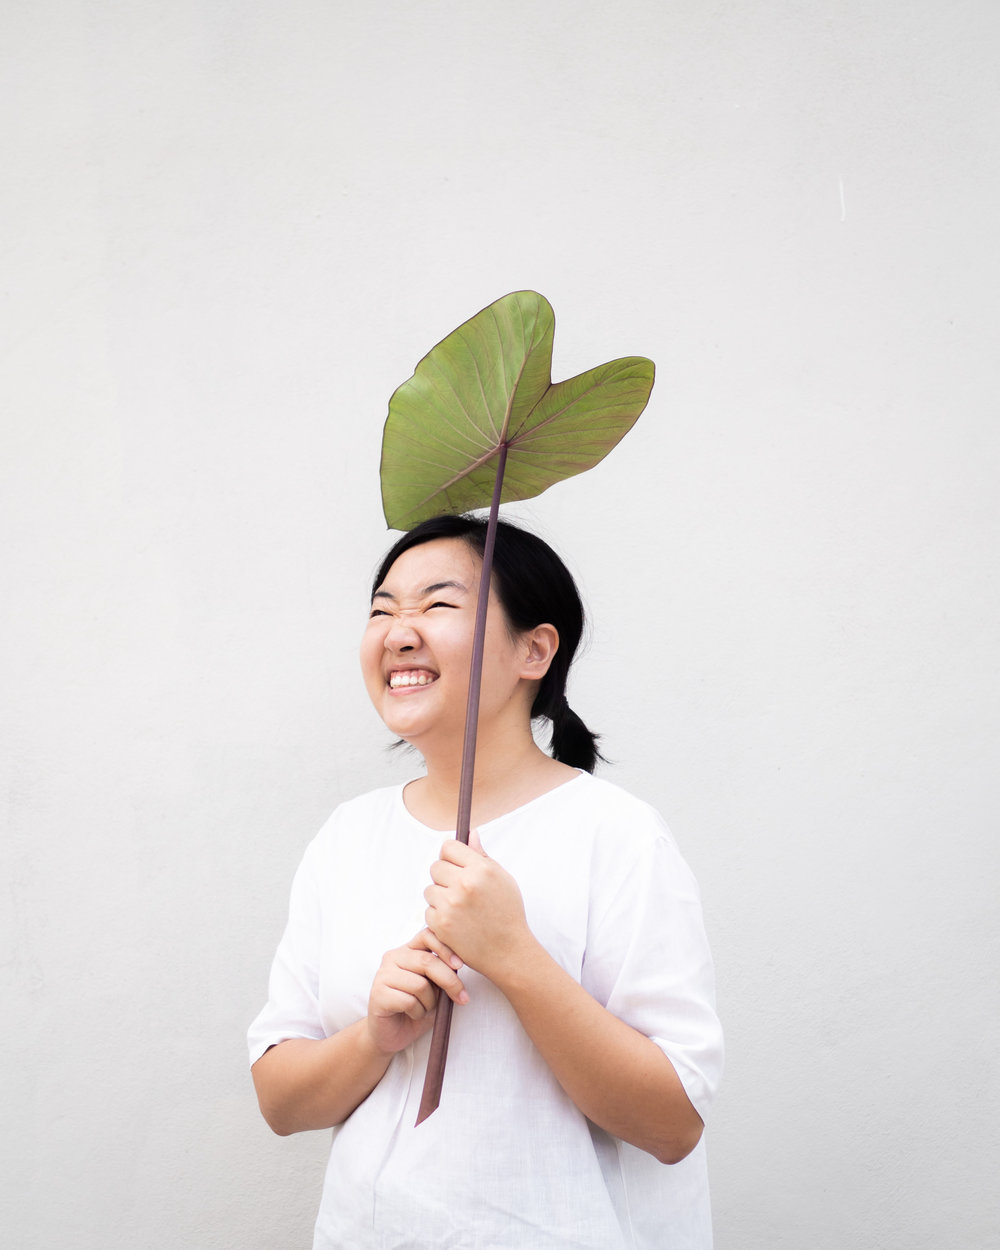 Latest addition to the growing team; Noynar studied her B.I.D. from Industrial Design, Chulalongkorn University. She has interest in floral work, and floral craft, as well as innovative technique for PHKA's project. She is now in charge of executing complicated installations.  romrawin@phkastudio.com